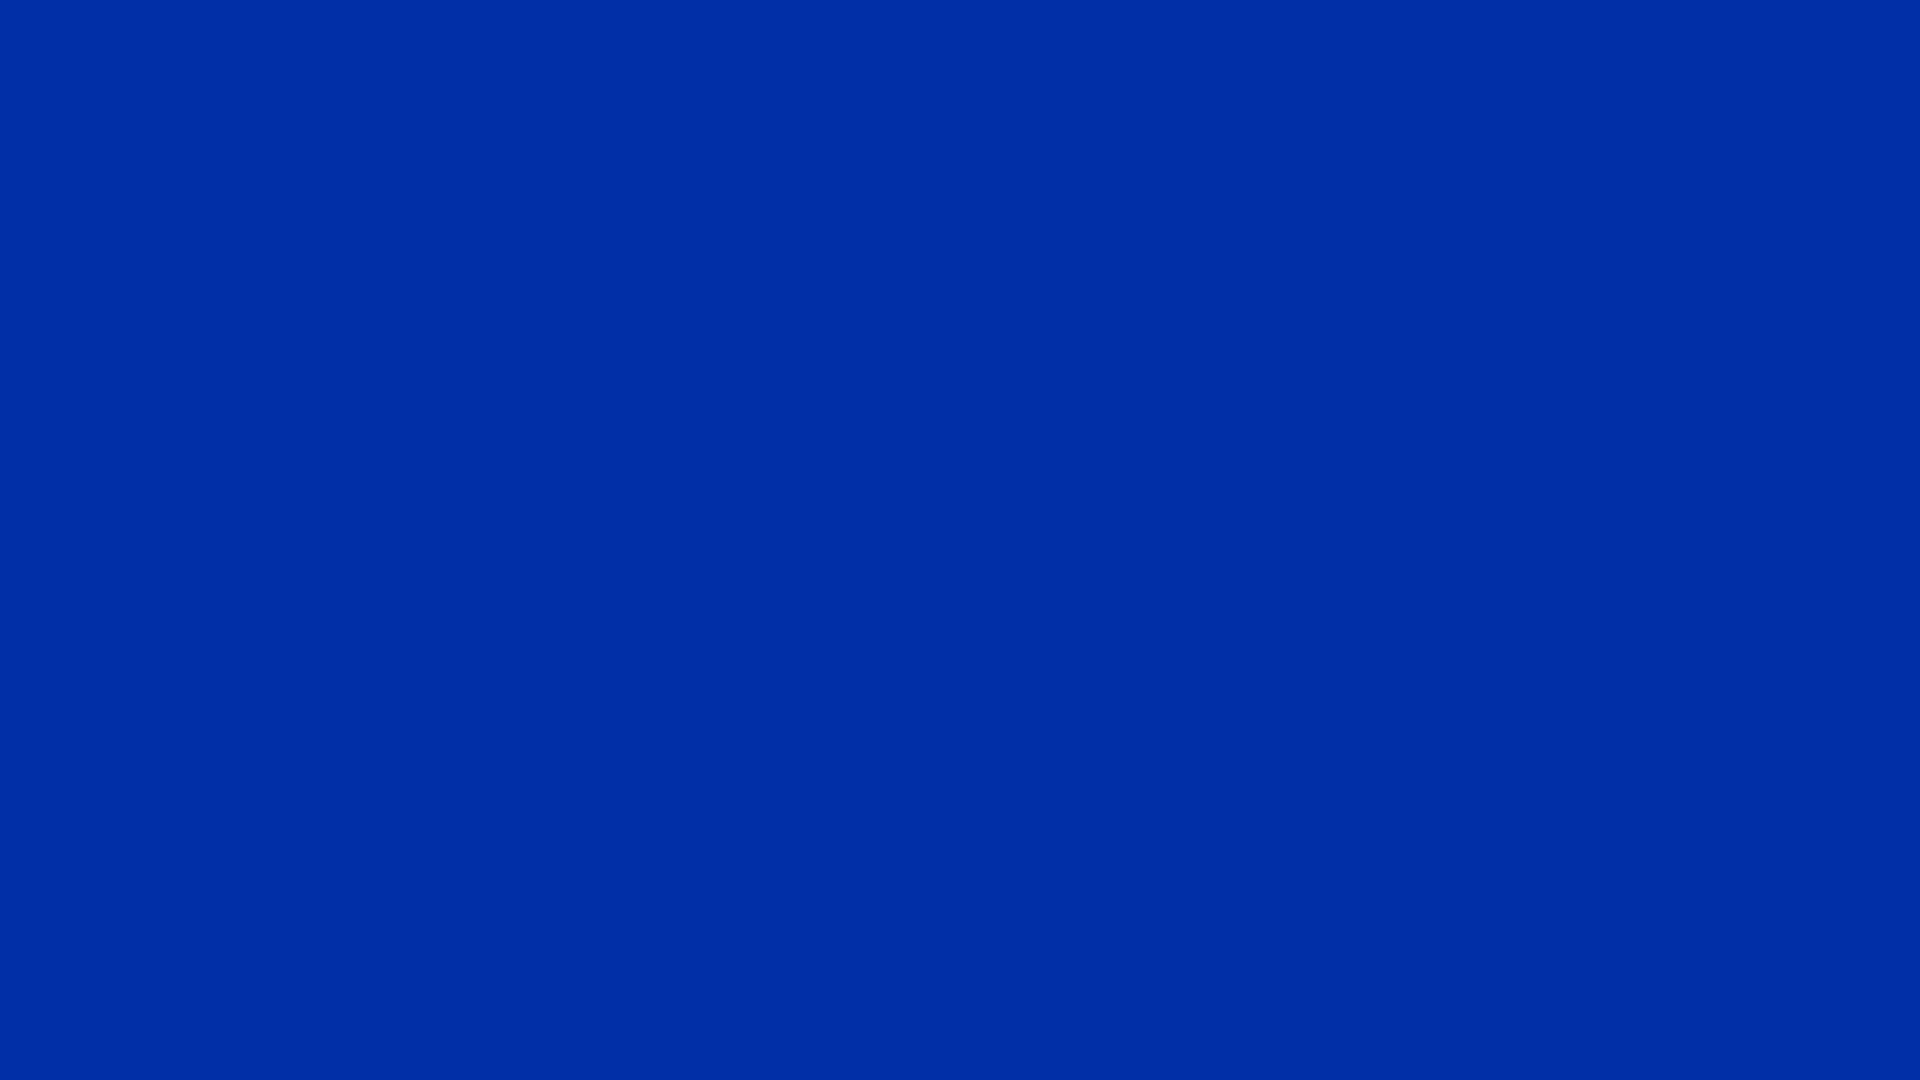 1920x1080 International Klein Blue Solid Color Background